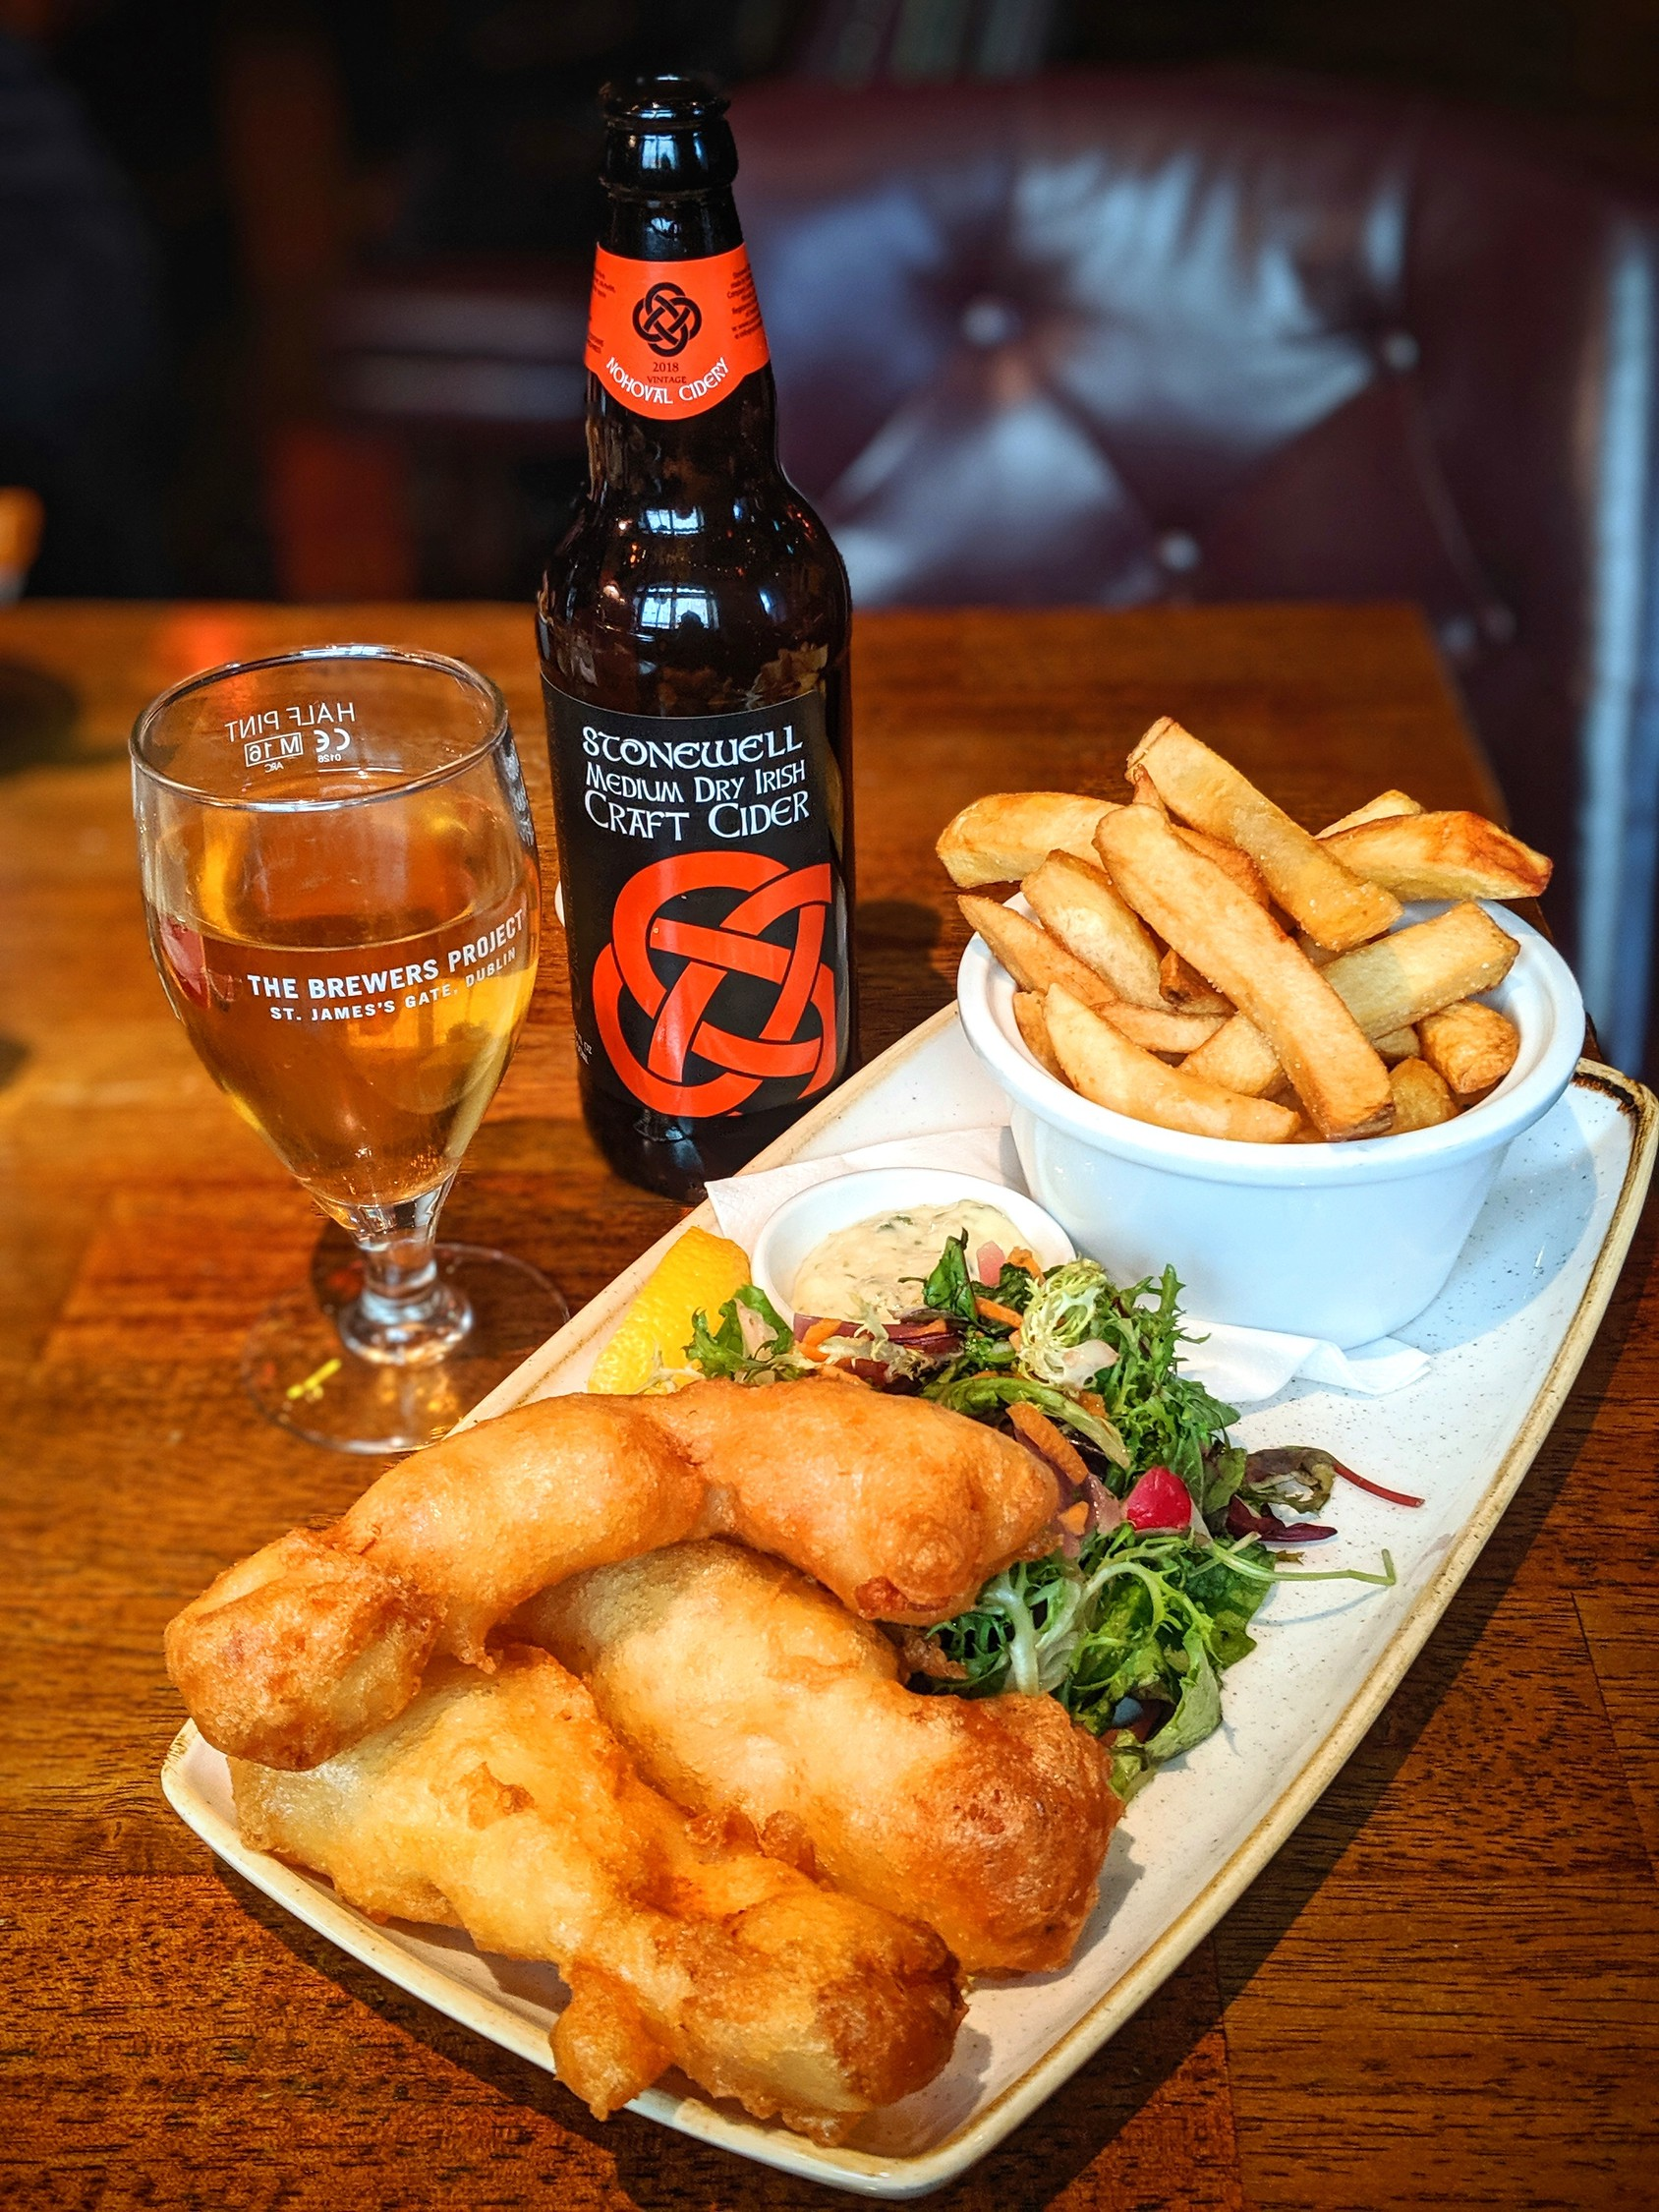 Fish and chips with local cider at Brasserie on the Corner in Galway Ireland.